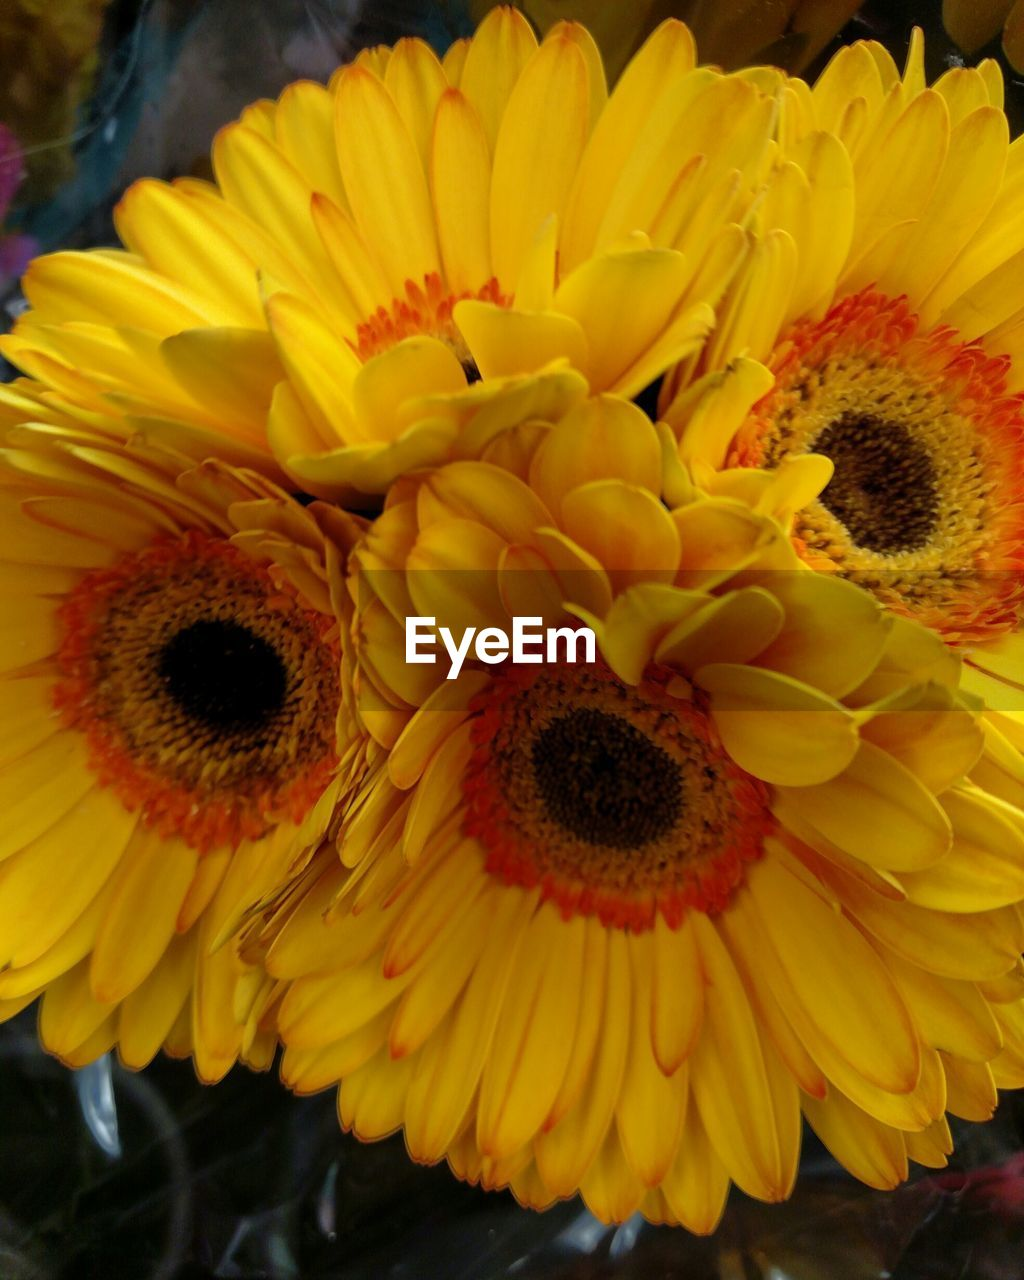 flower, petal, yellow, fragility, beauty in nature, freshness, flower head, nature, growth, plant, pollen, no people, close-up, sunflower, blooming, outdoors, day